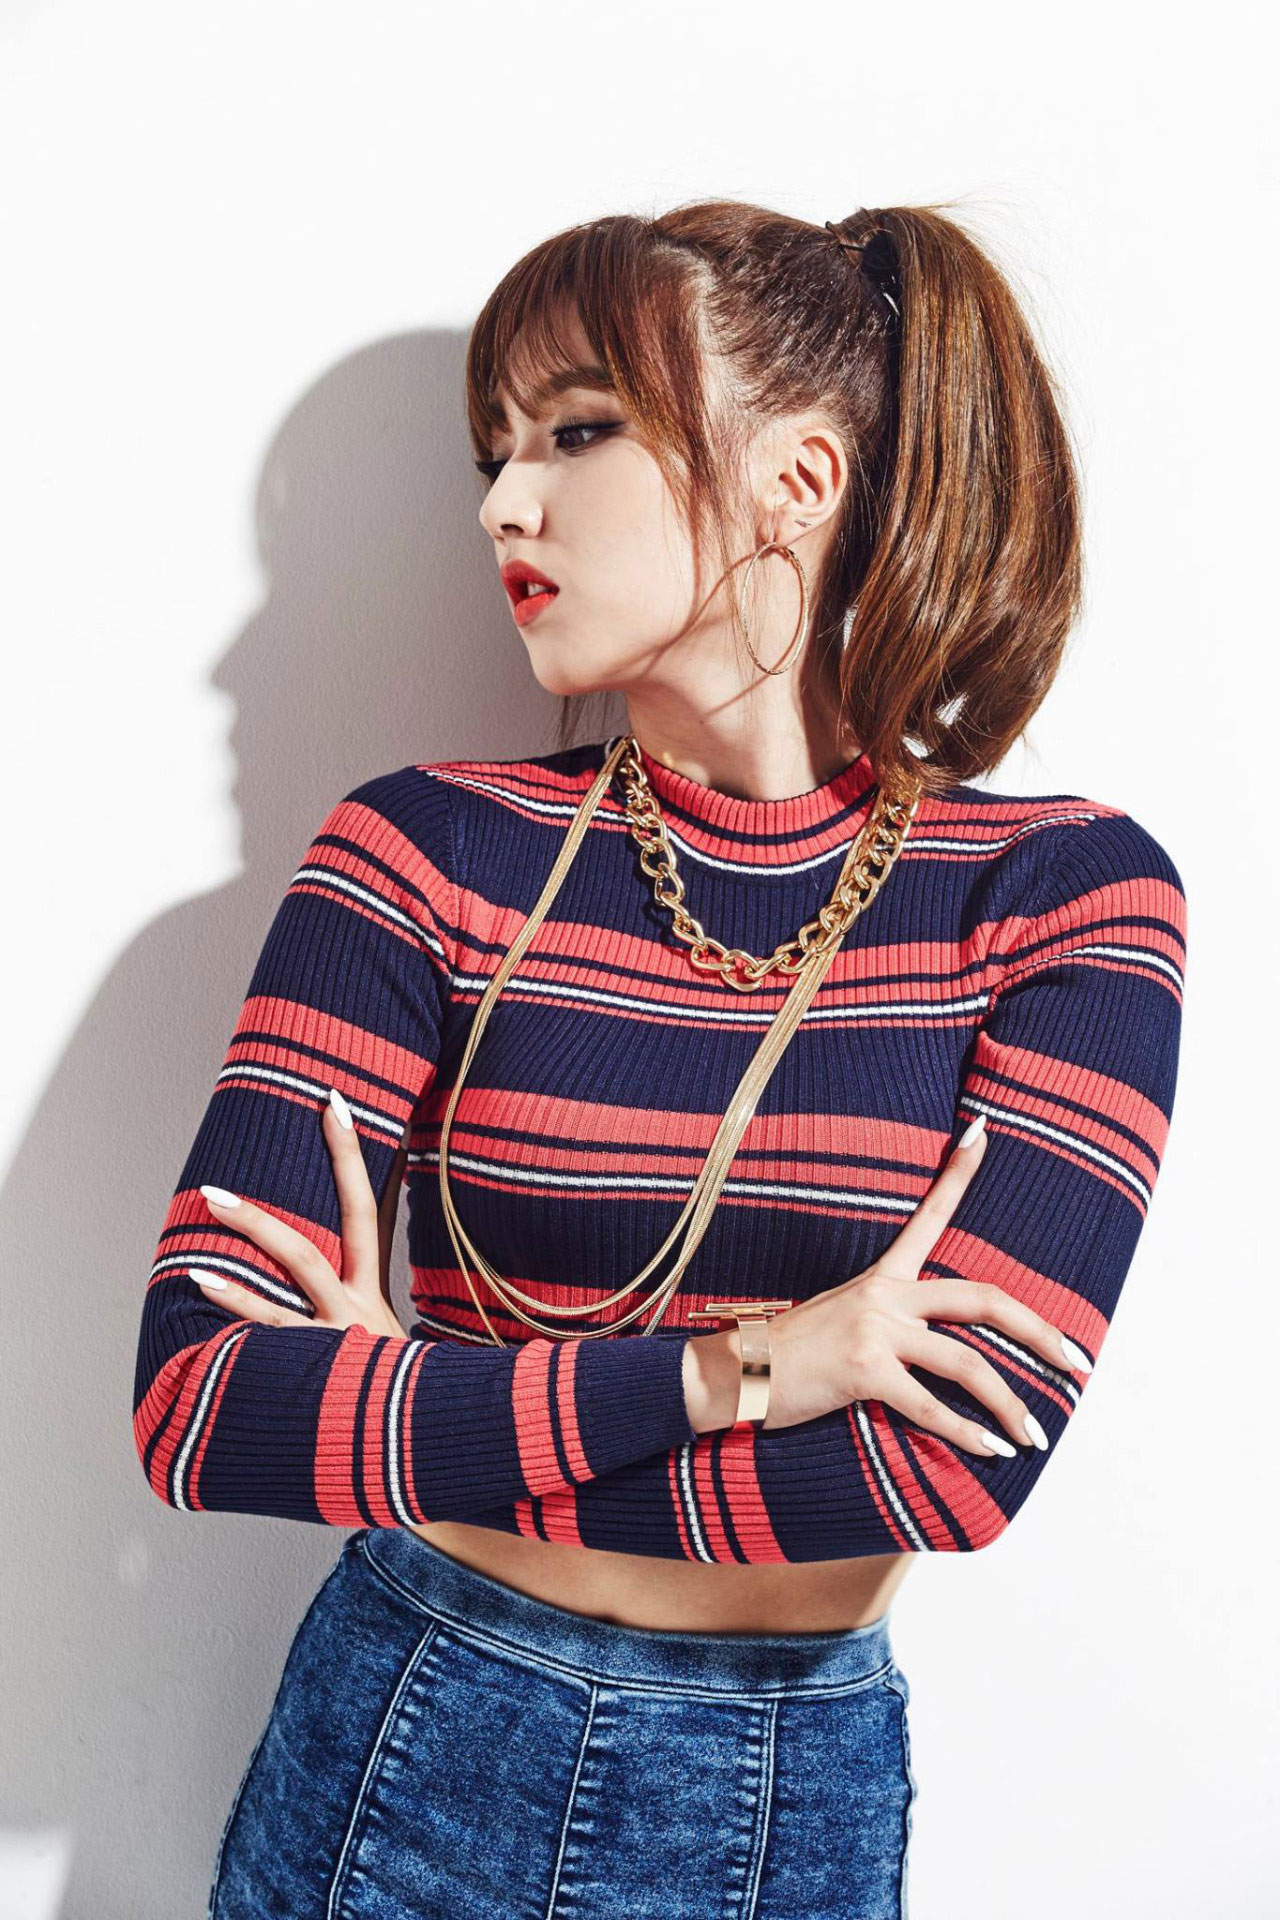 Rania Tae Demonstrate mini album